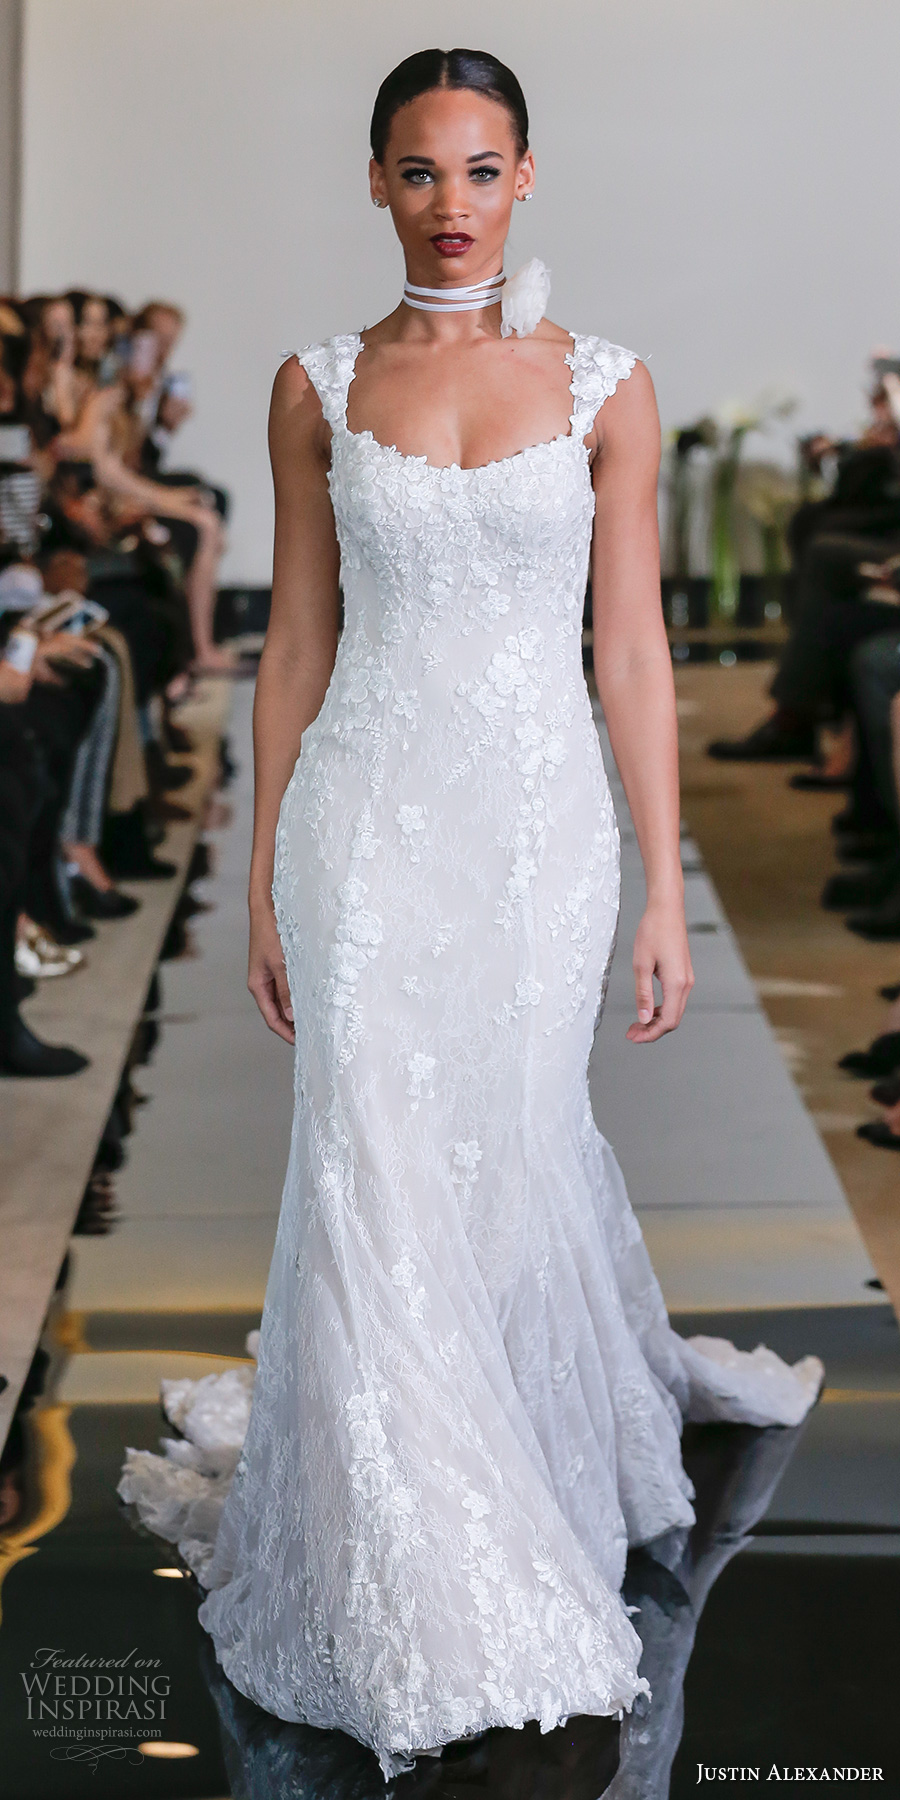 justin alexander spring 2018 bridal sleeveless thick strap square neckline full embellishment elegant fit and flare wedding dress chapel train (21) mv